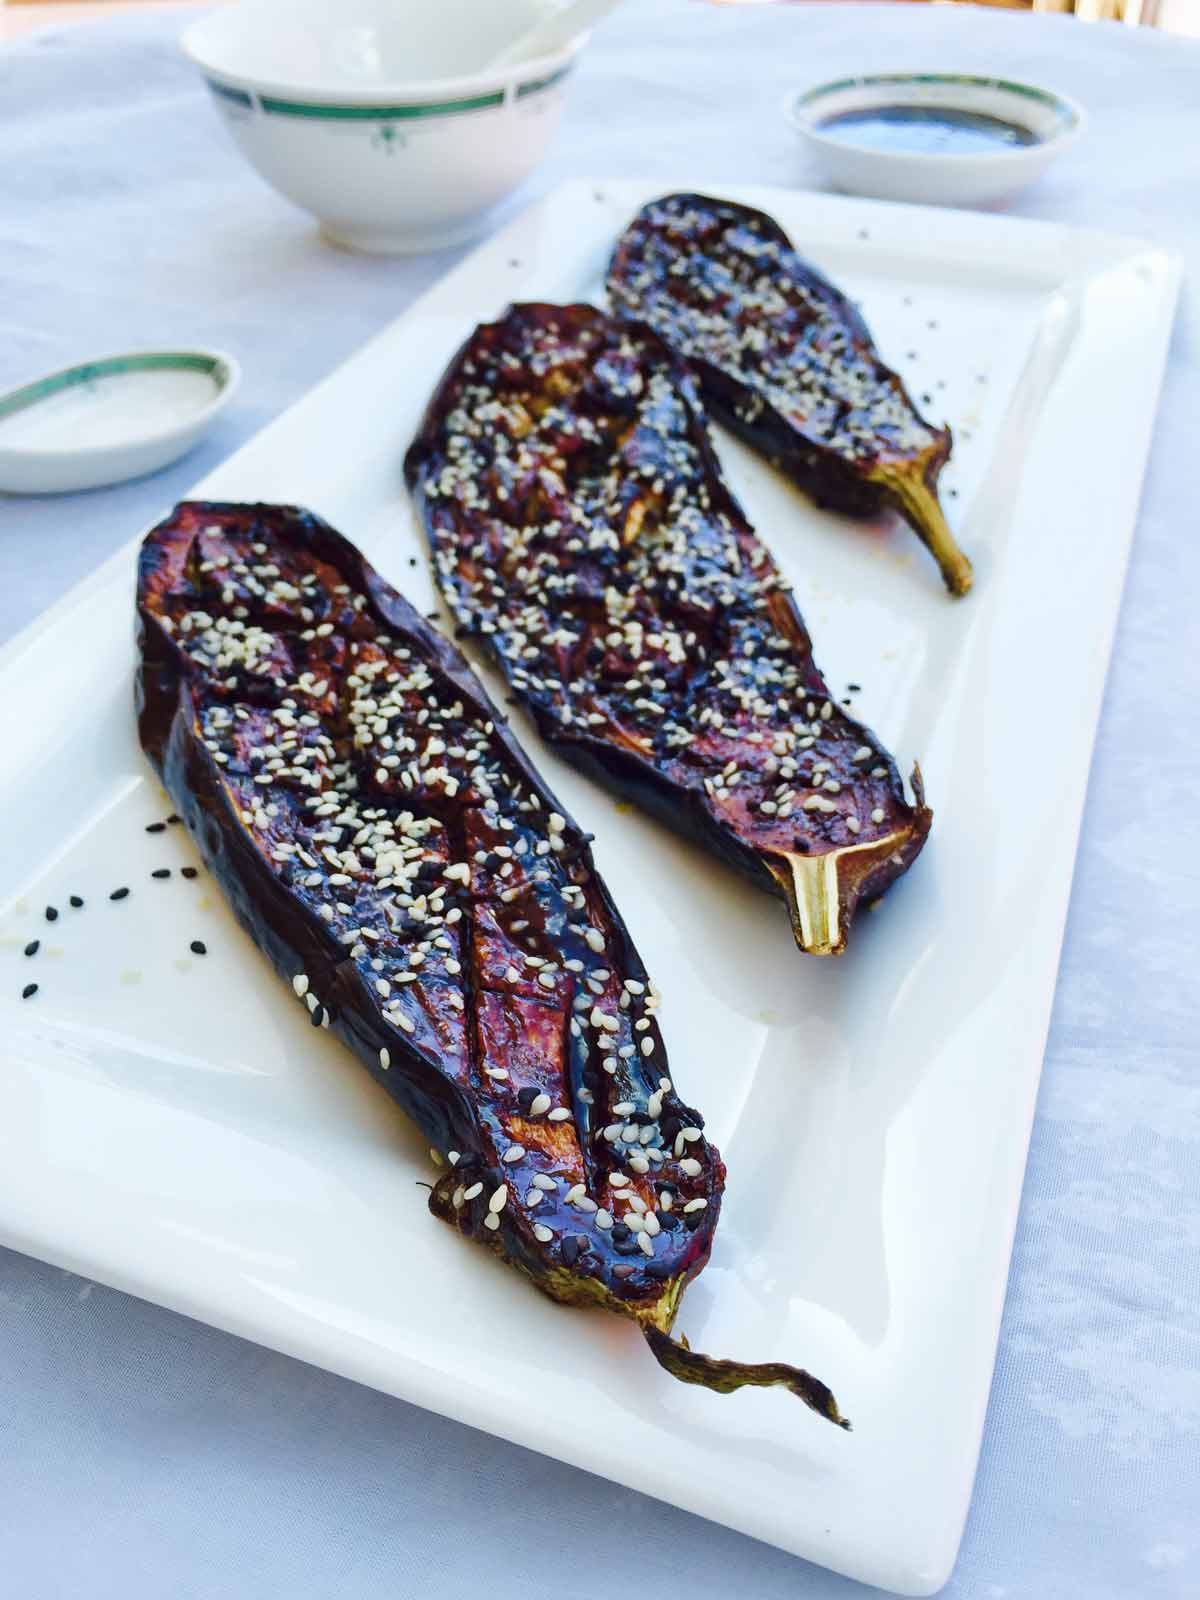 Experience the Japanese cuisine with these miso aubergines, marinated with a tasty miso paste, honey and sesame seeds.